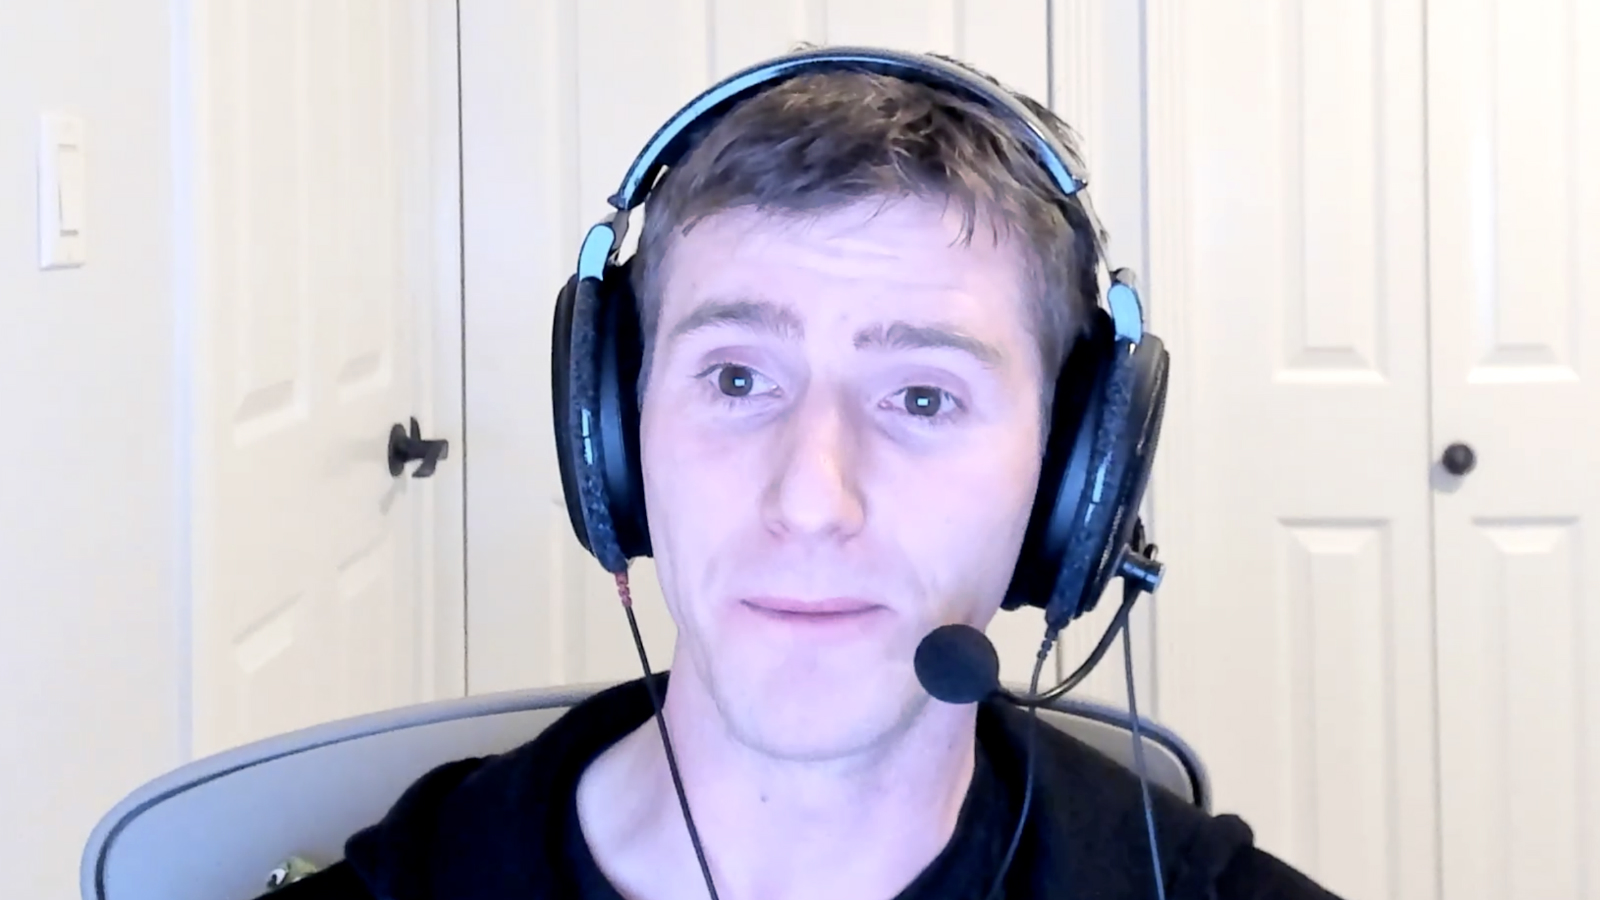 Linus Tech Tips Explains Why He S Considering Retirement In Emotional Stream Dexerto